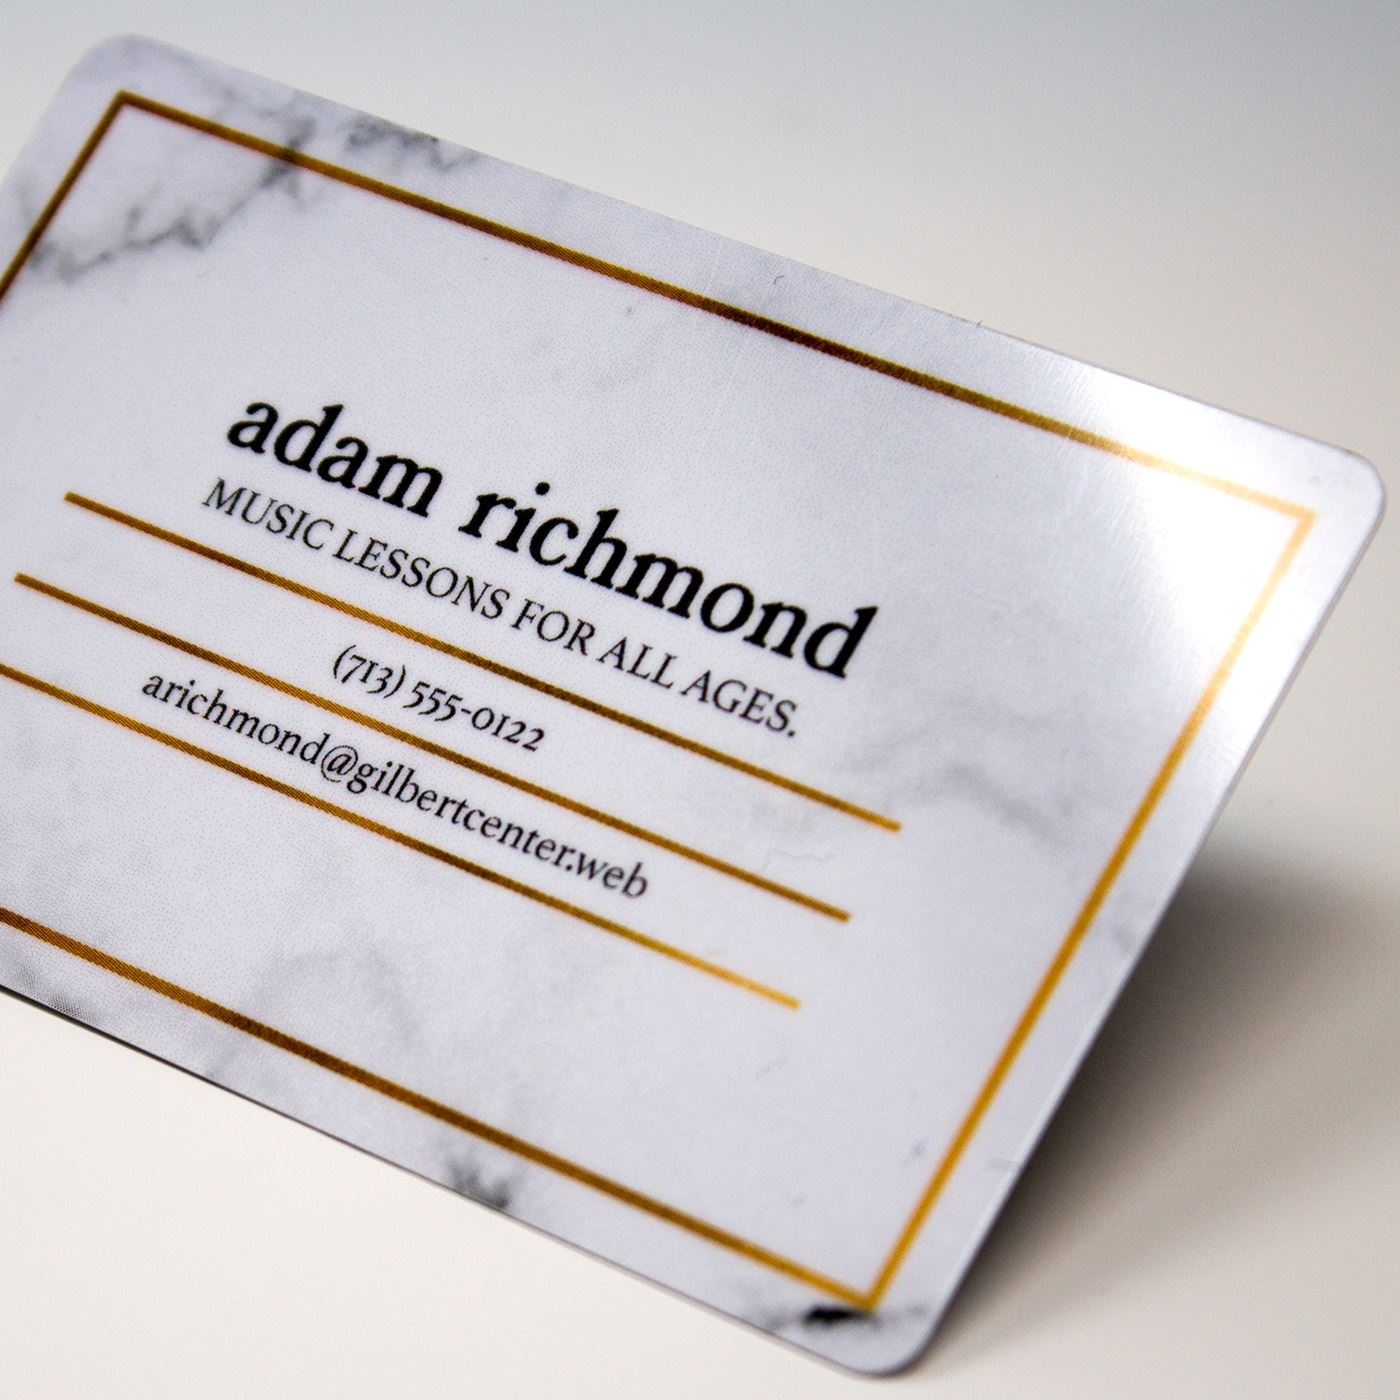 Specialty Business Cards, Unique Business cards | Vistaprint